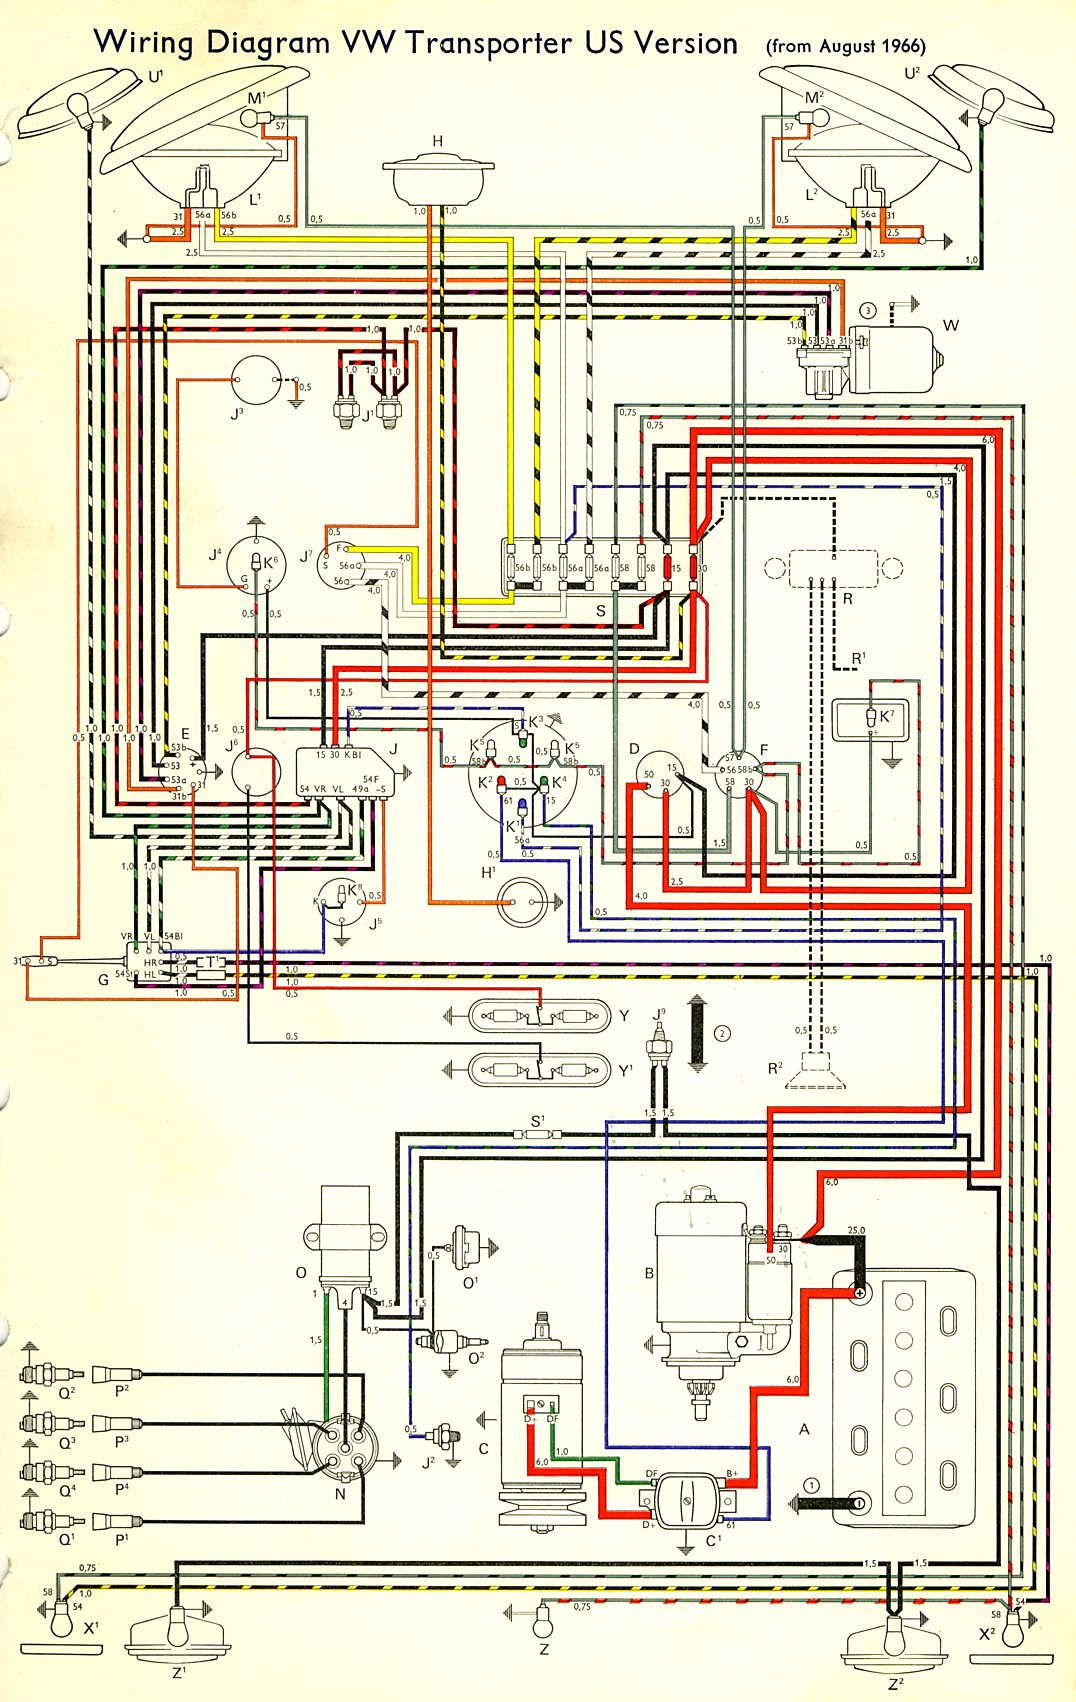 thesamba com type 2 wiring diagrams rh thesamba com 1963 VW Wiring Diagram 1965 VW Wiring Diagram